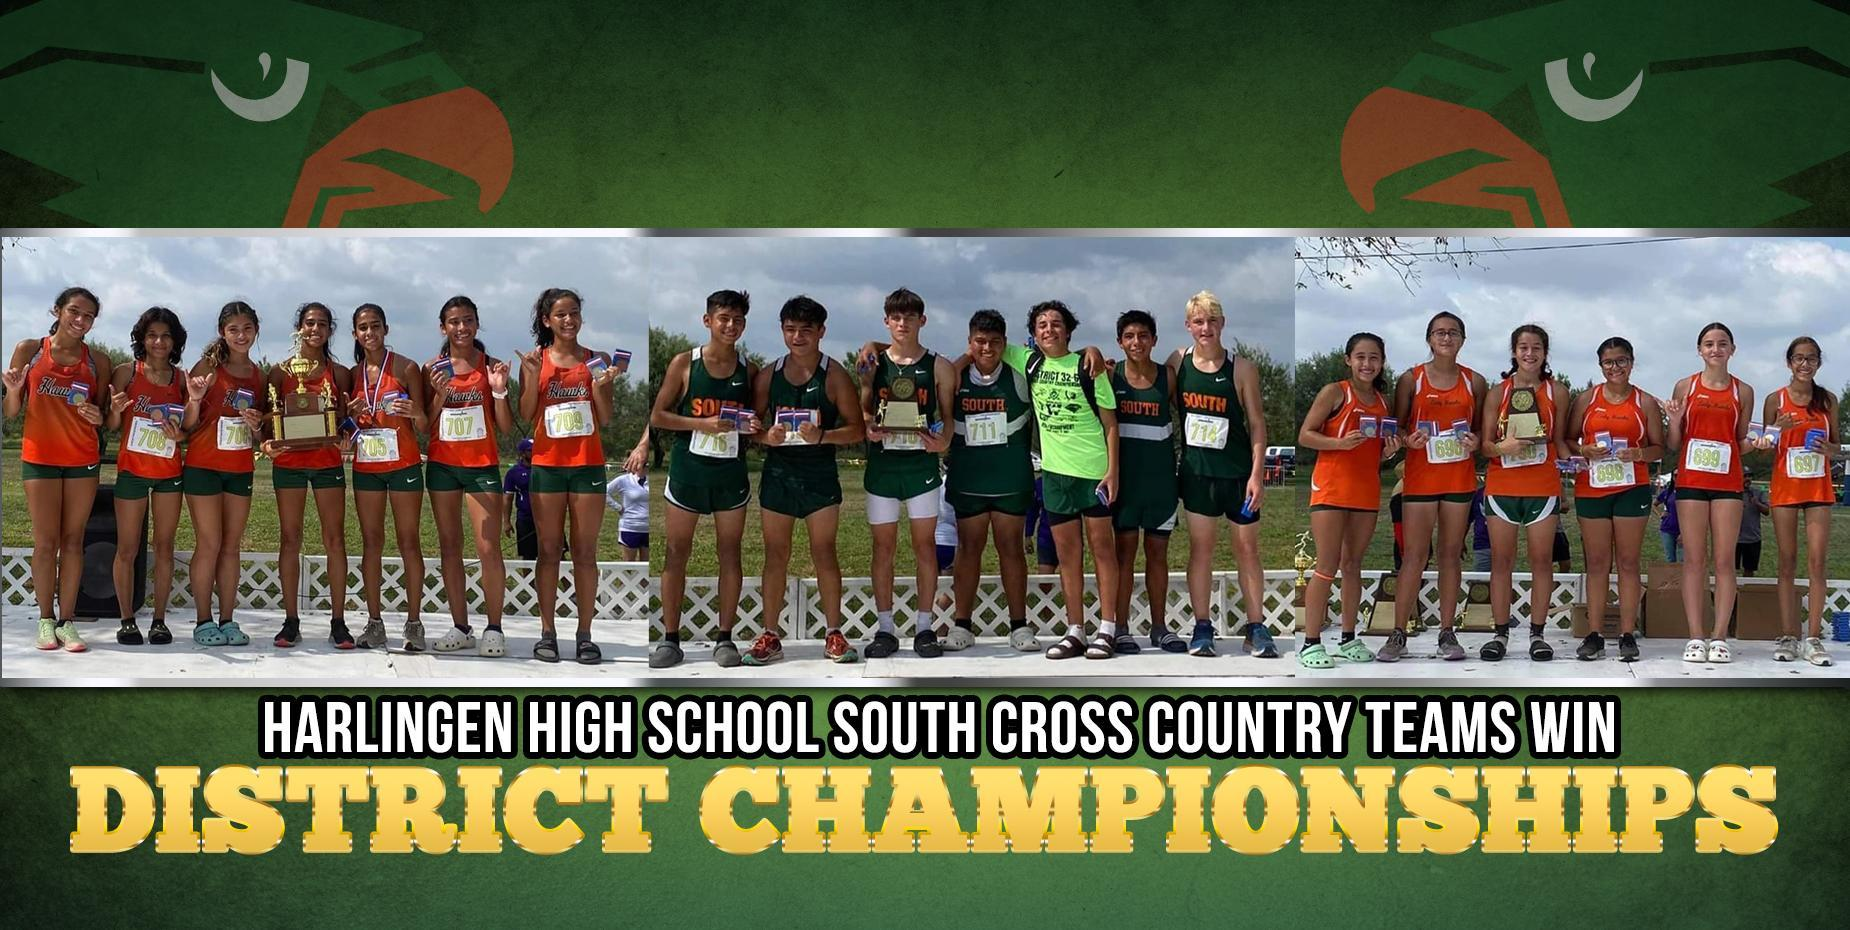 Harlingen High School South Cross Country teams win District Championship